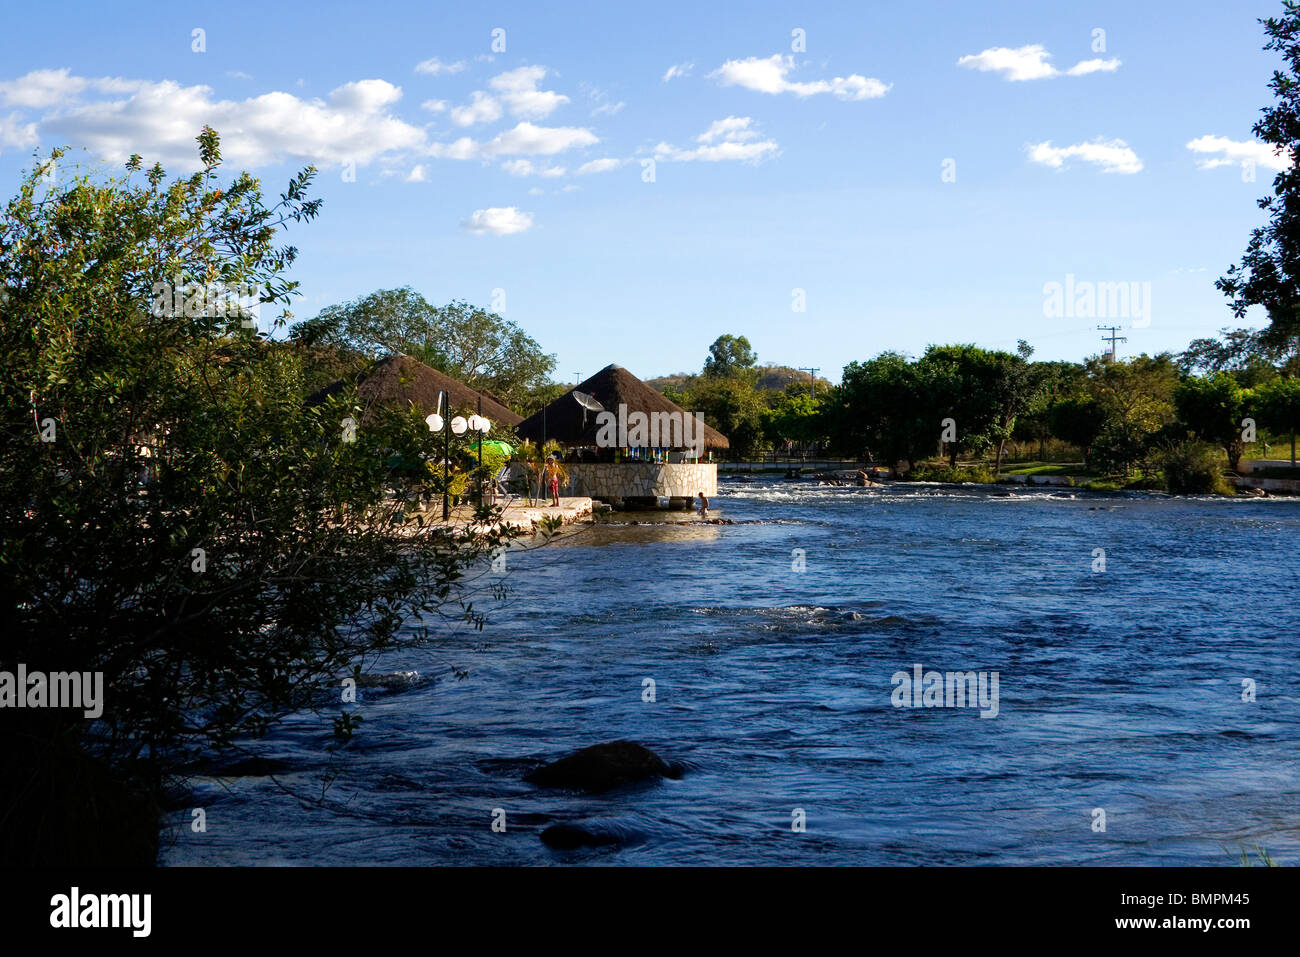 Ranchão (Big Ranch), Correntina, Bahia, Brazil - Stock Image